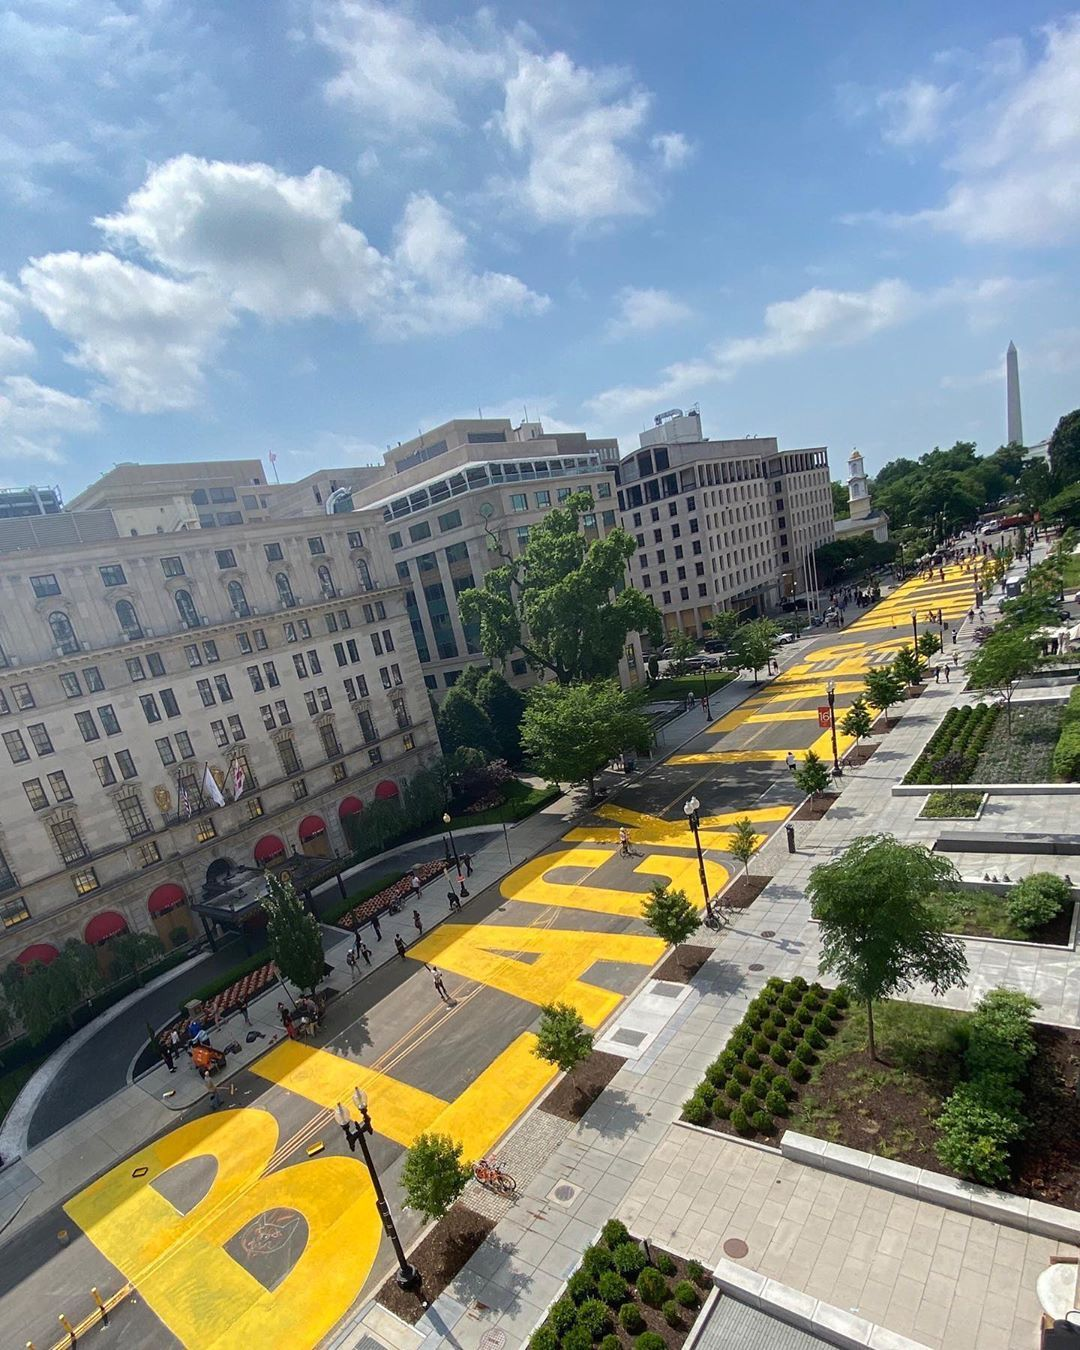 A Bold Black Lives Matter Statement Transforms A Street Leading To The White House In Washington D C Black Lives Matter Art Black Lives Matter Black Lives